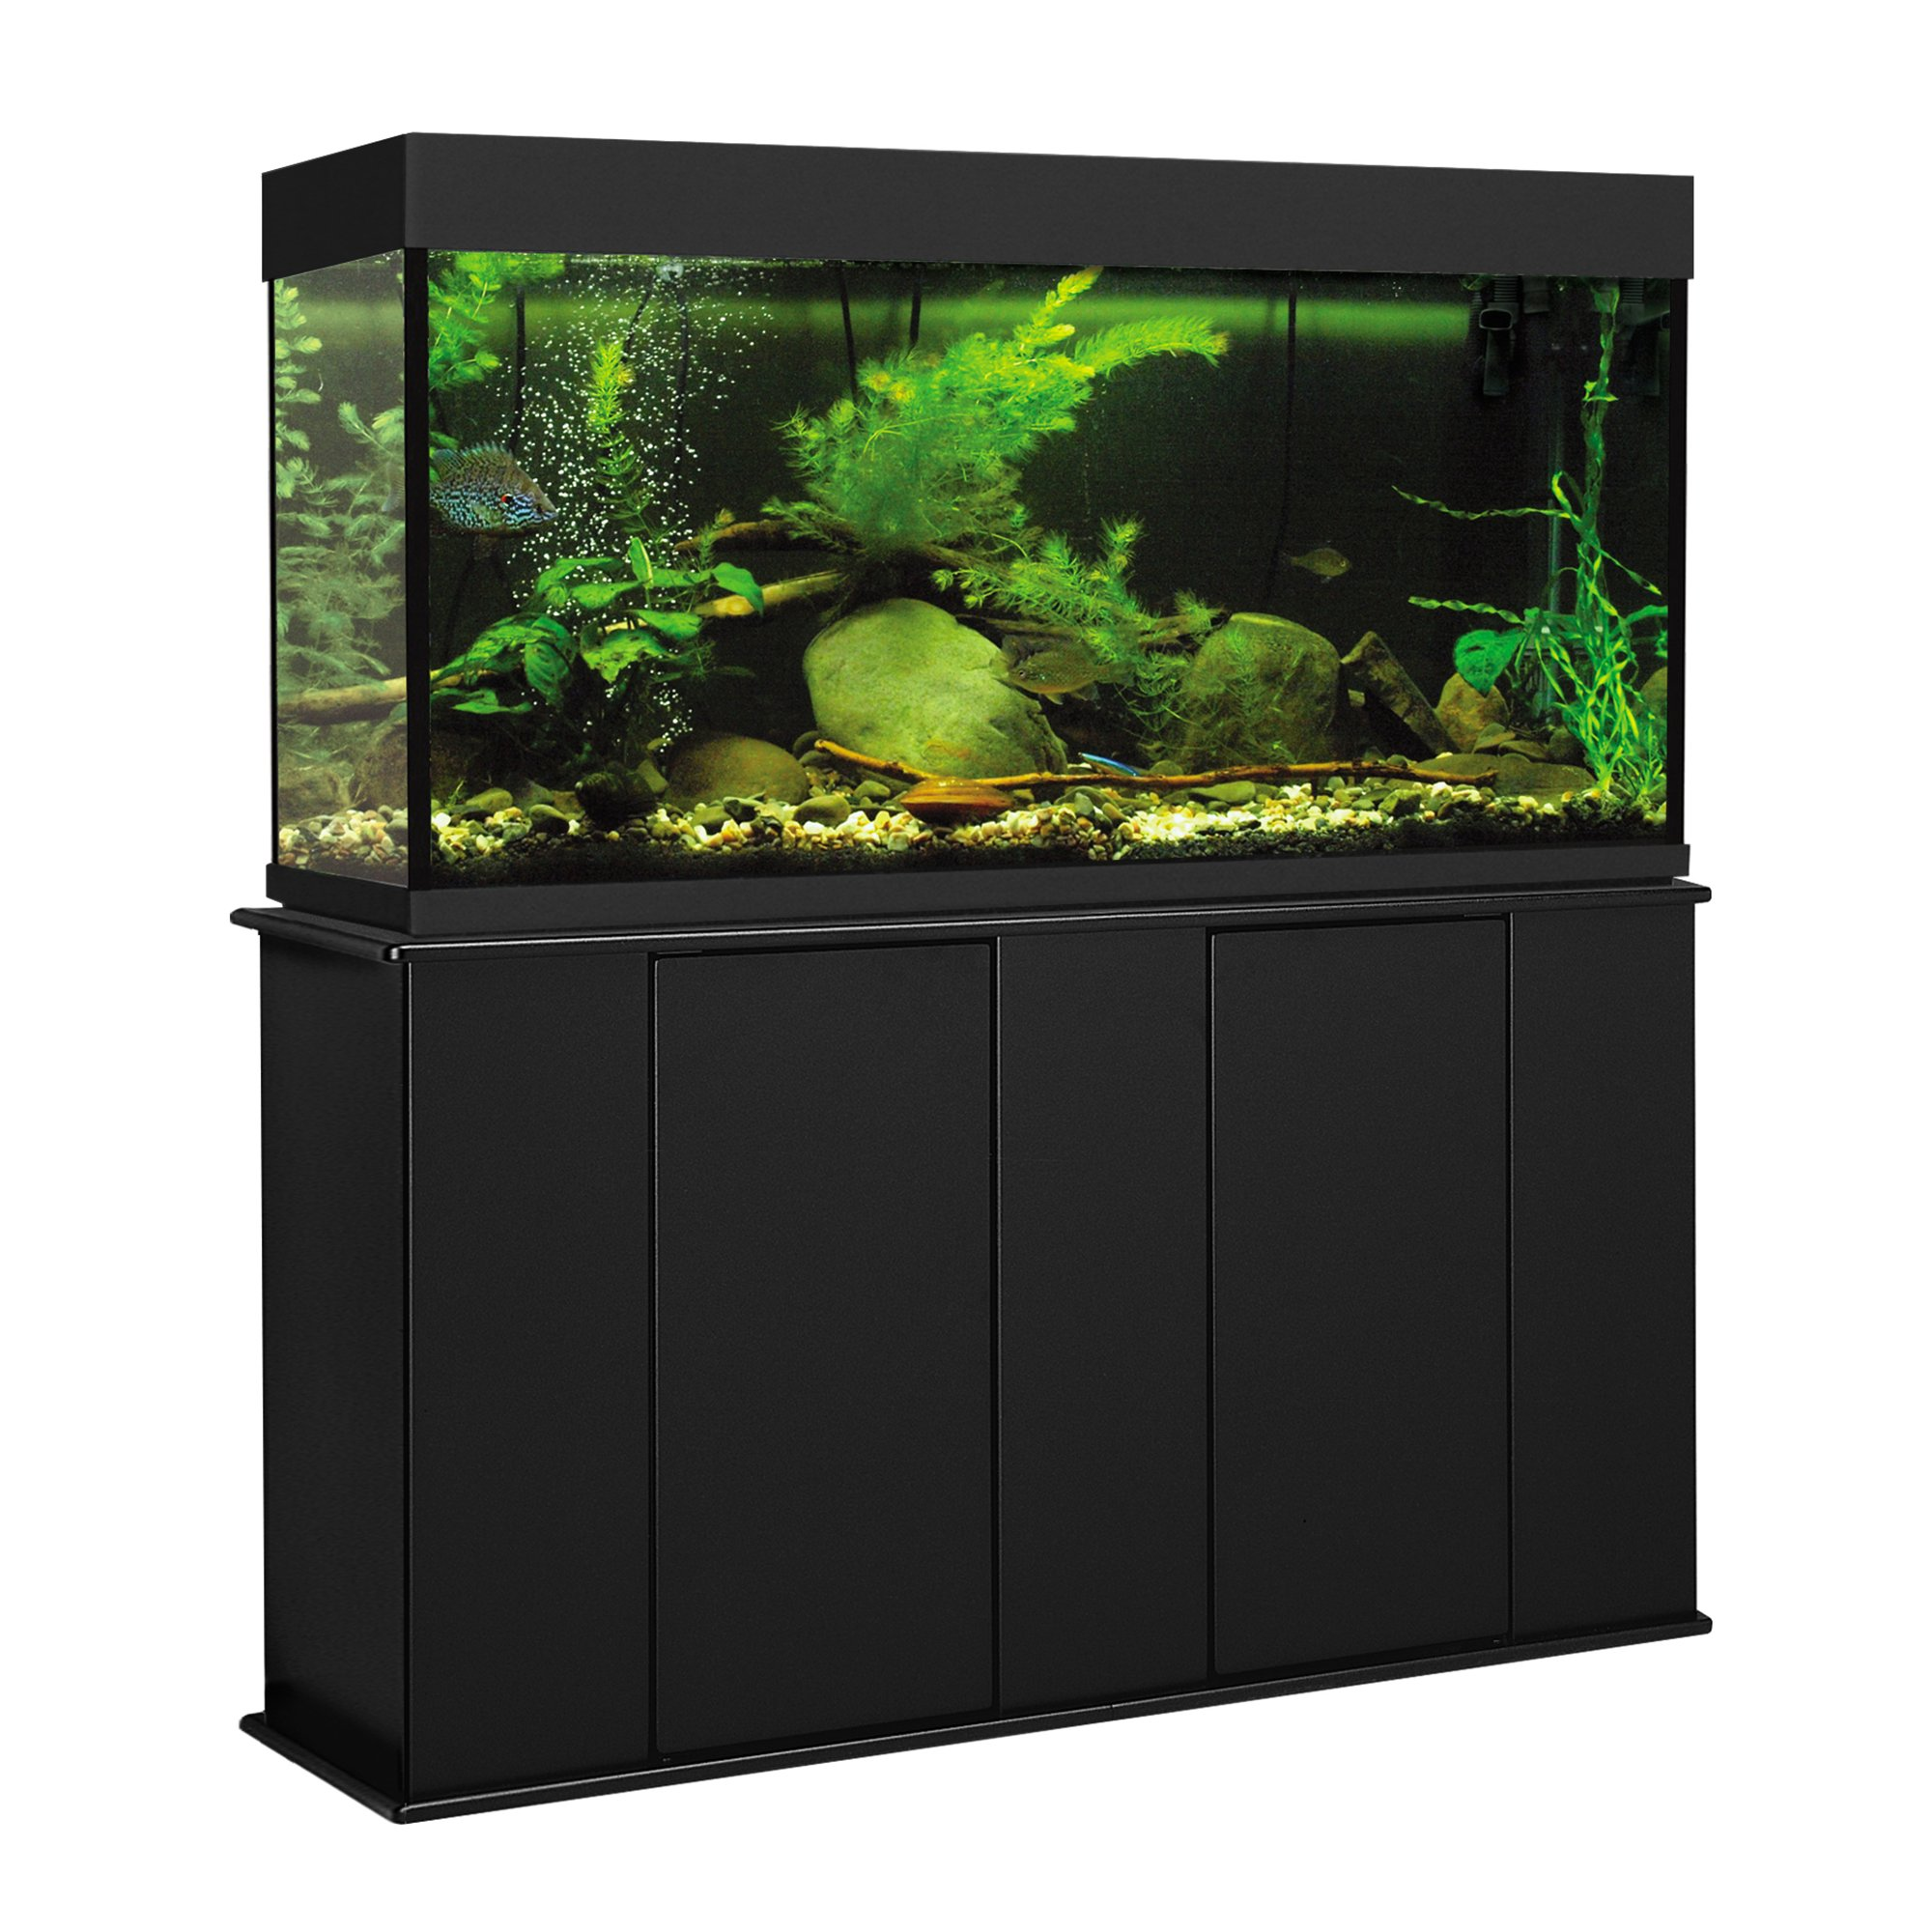 Aquatic fundamentals 55 gallon upright aquarium stand petco for 55 gallon fish tank petco